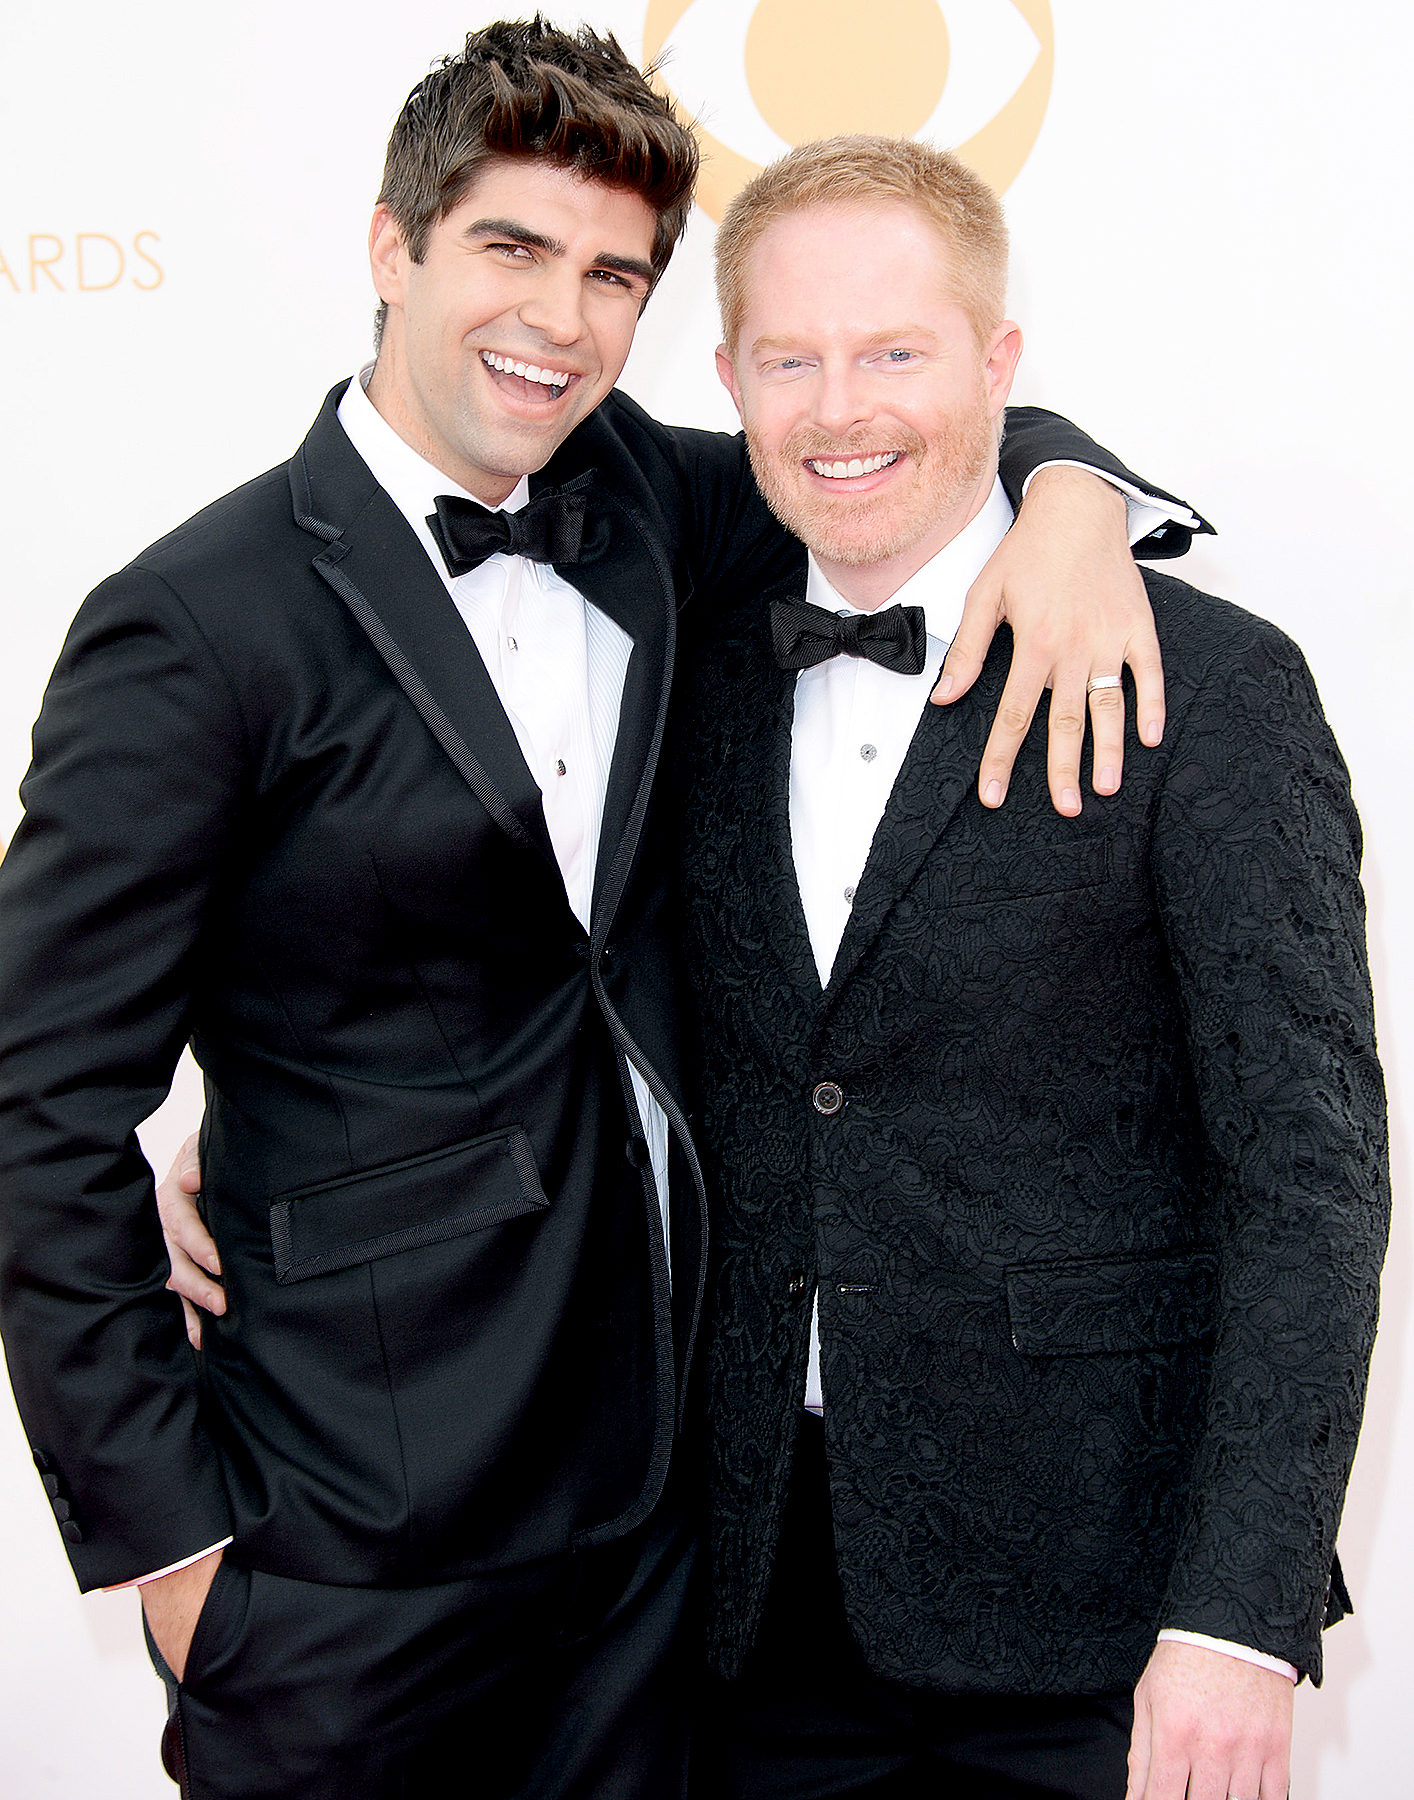 Jesse Tyler Ferguson and Justin Mikita arrive at the 65th Annual Primetime Emmy Awards held at Nokia Theatre L.A. Live on September 22, 2013 in Los Angeles, California.